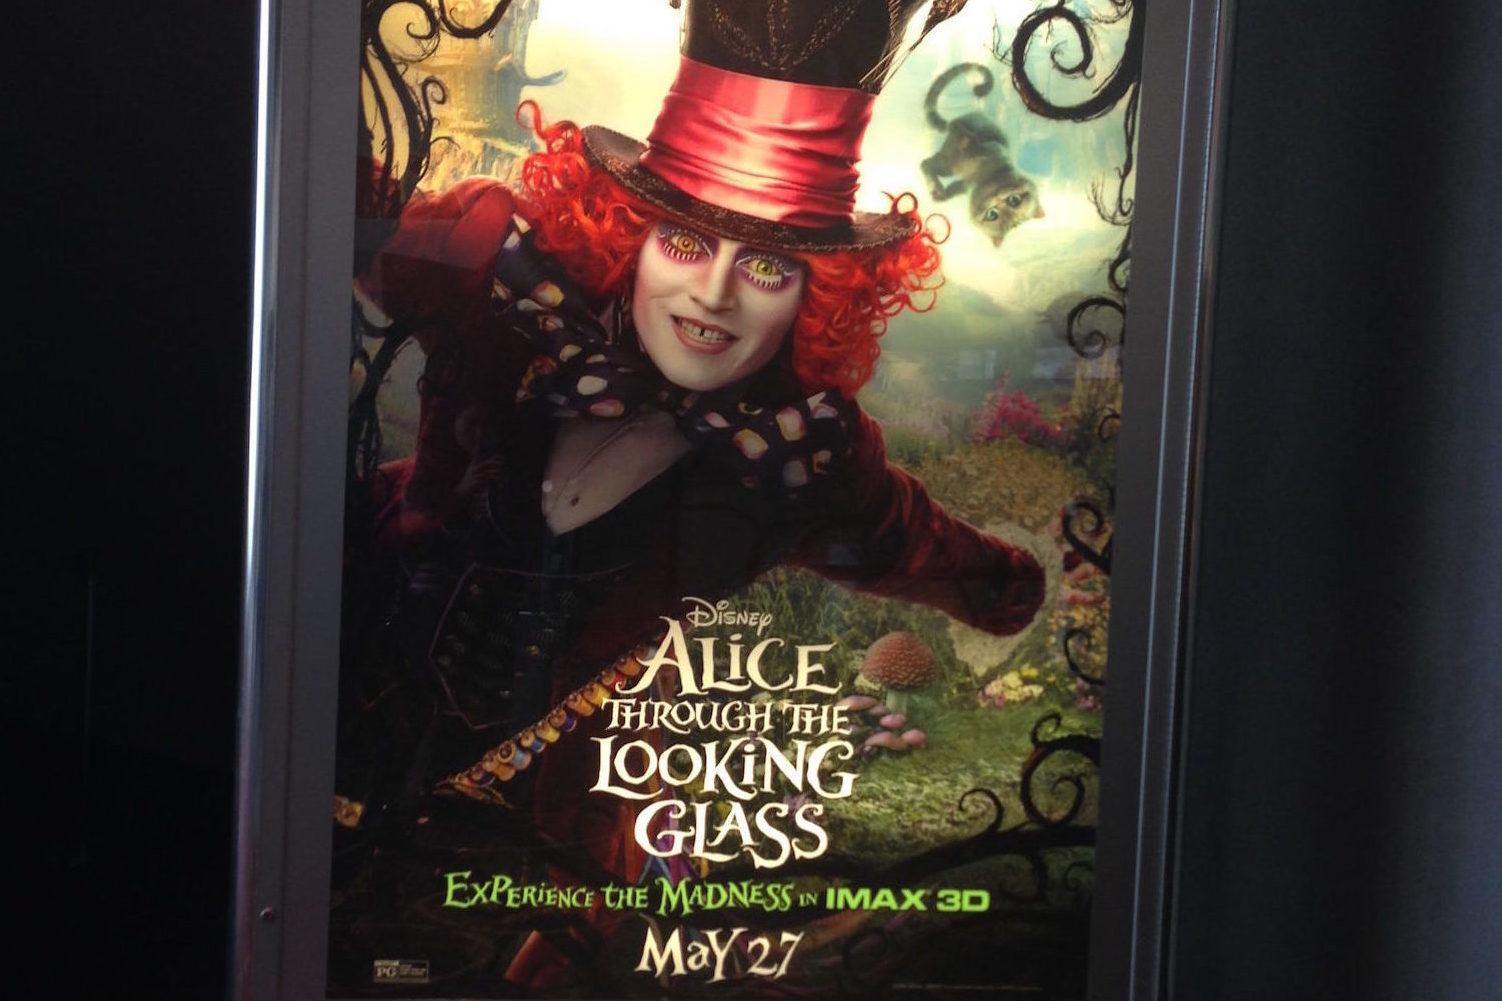 Alice Through the Looking Glass brings adventure, beautiful imagery to the screen